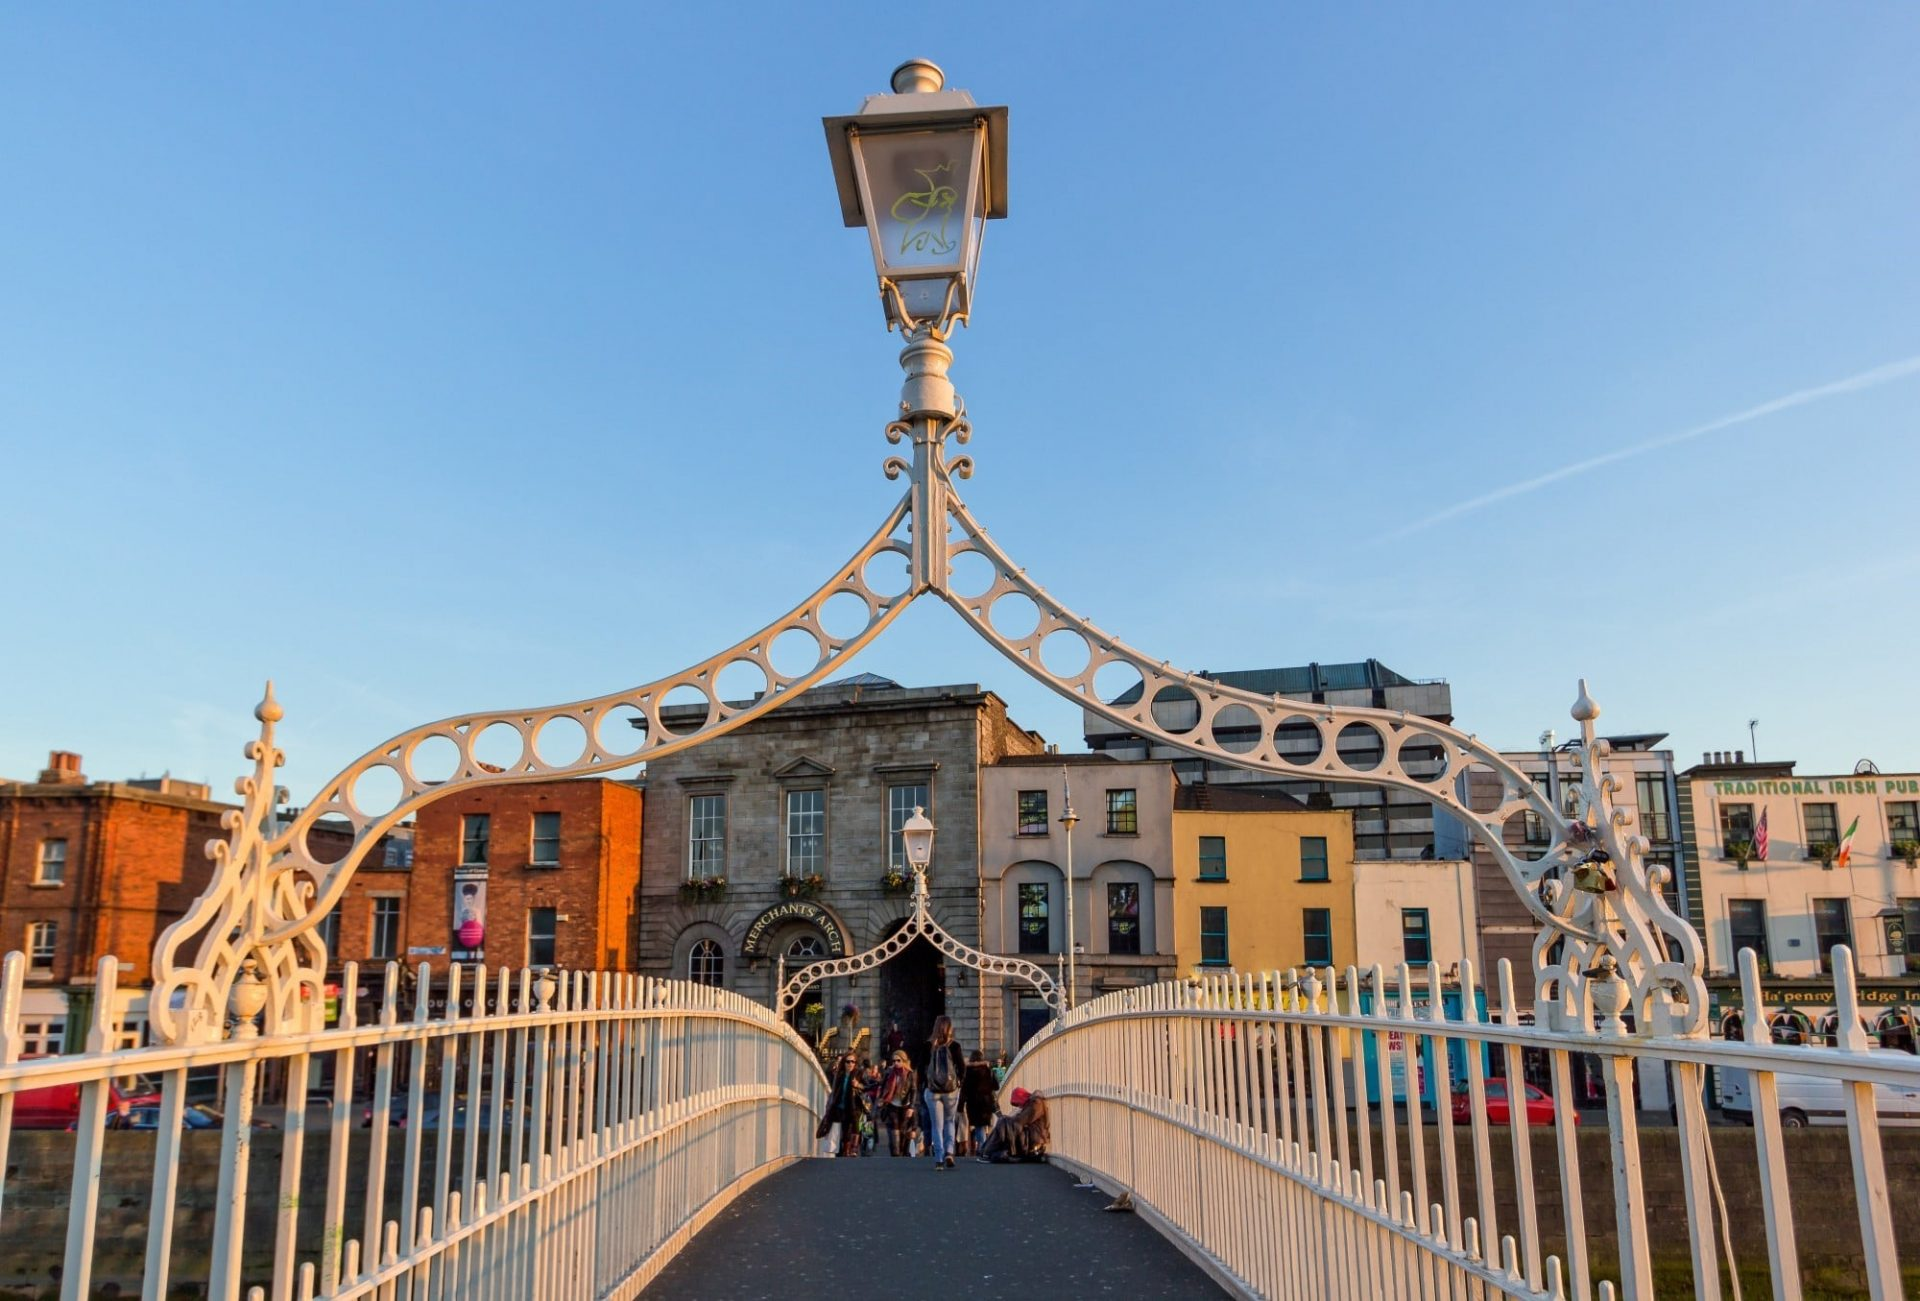 9 Brilliant Date Ideas You Can Do In Dublin That Wont Cost